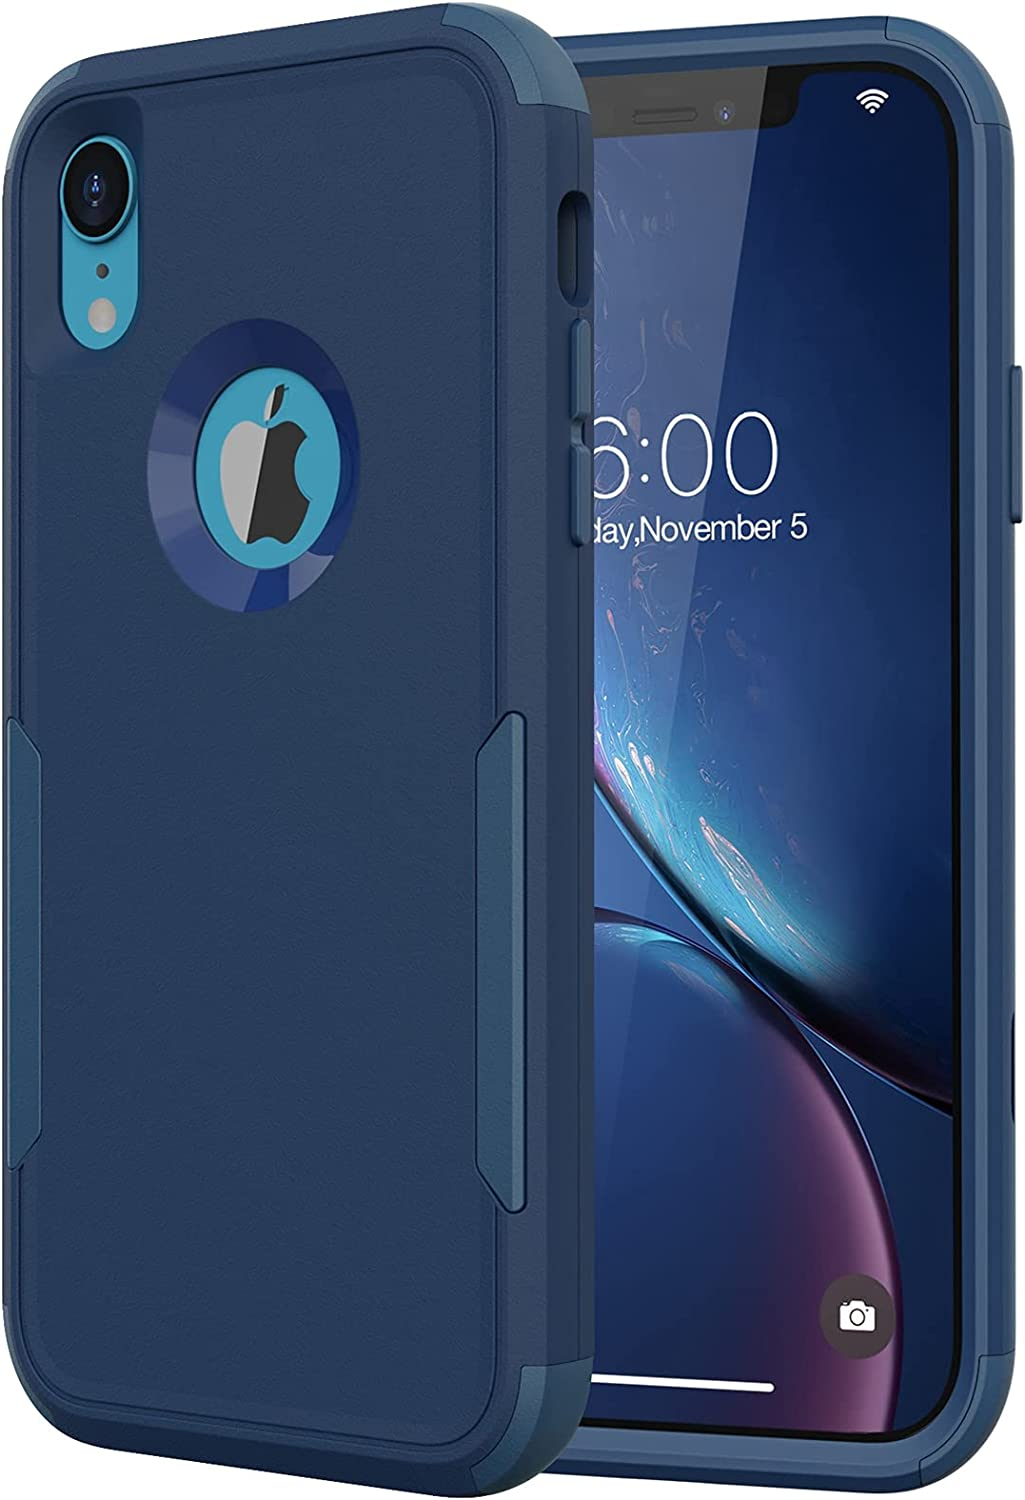 Diverbox Compatible with iPhone Xr Cases, [Shockproof] [Dropproof] Heavy Duty Protection Phone Case Cover for Apple iPhone Xr (Sapphire Blue)